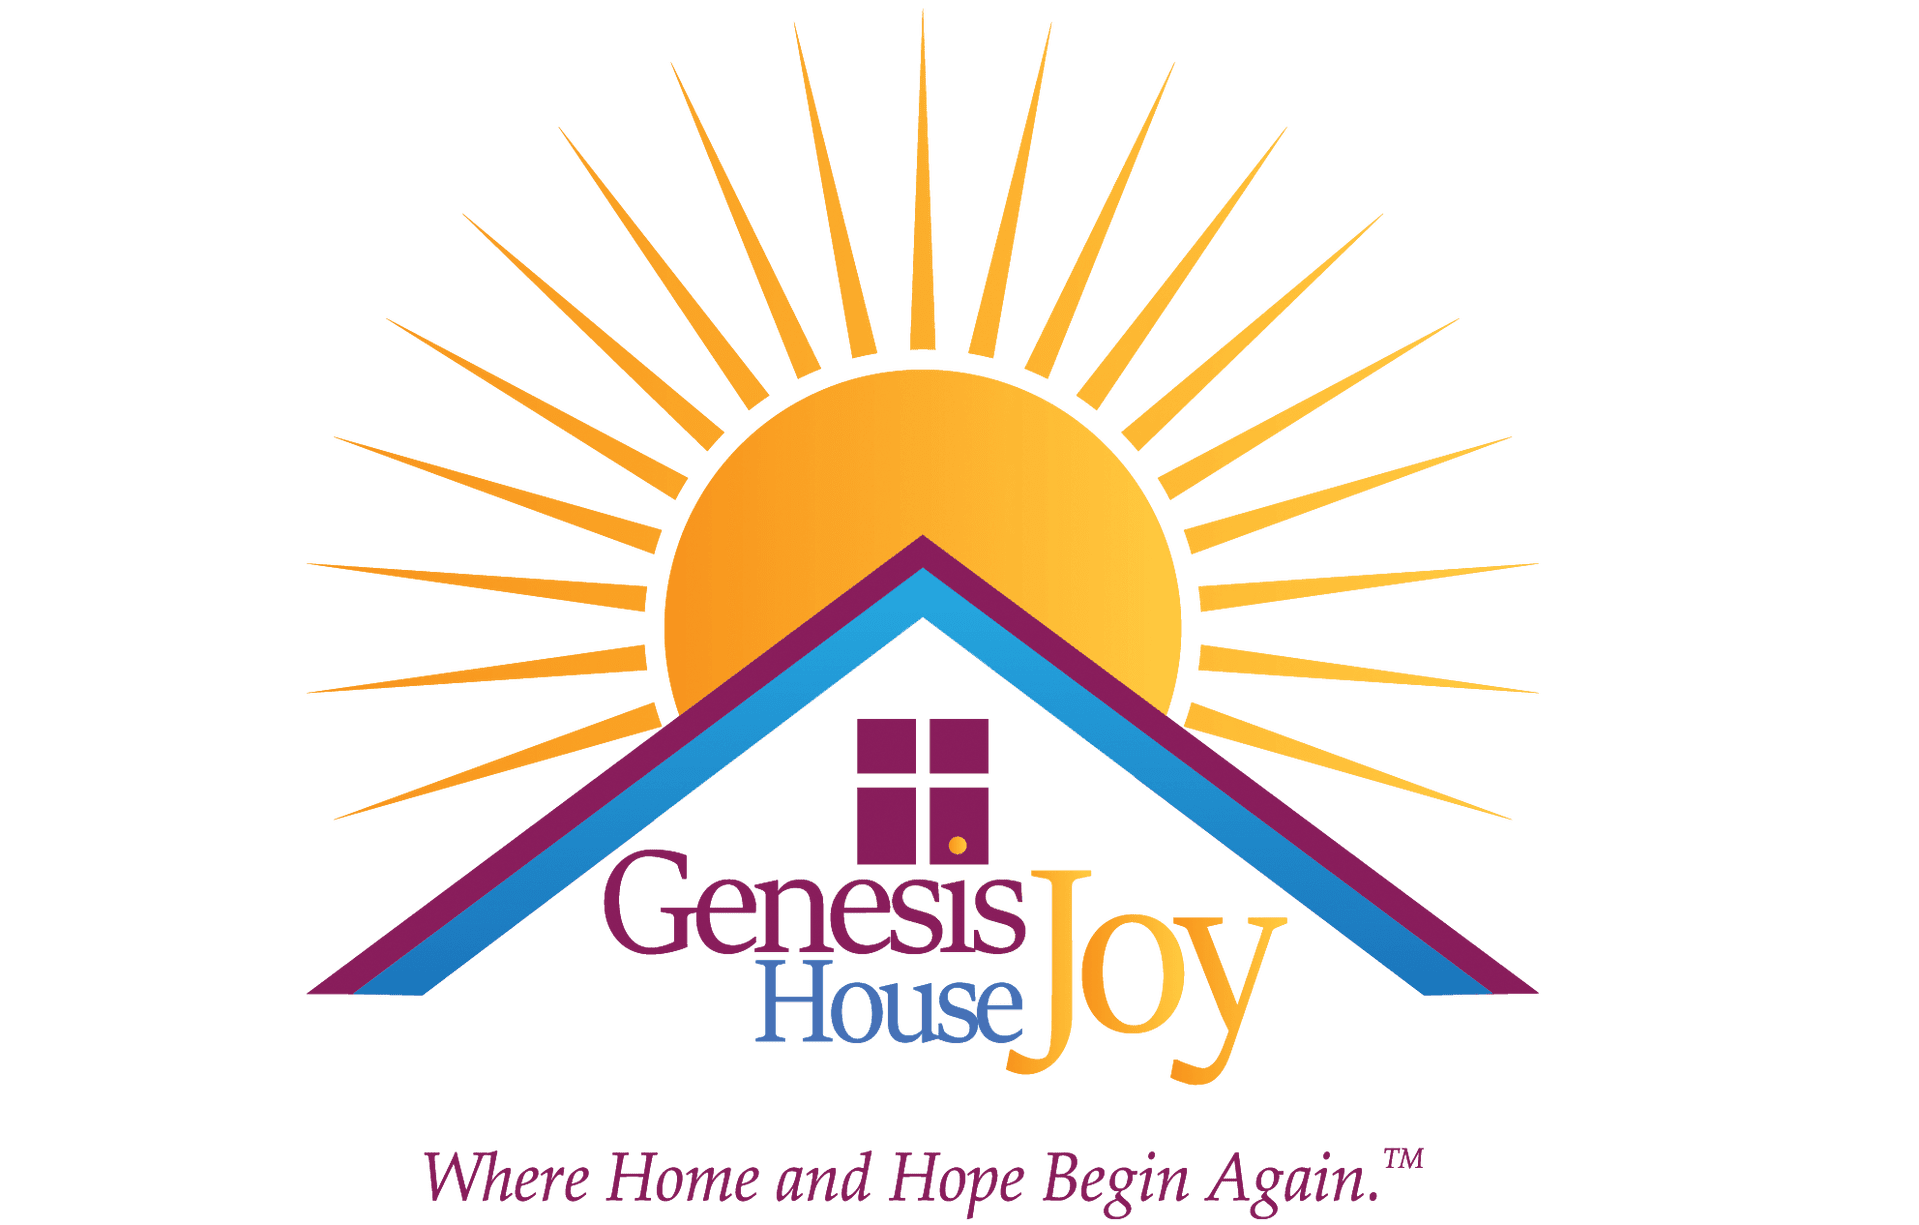 Genesis Joy House Homeless Shelter